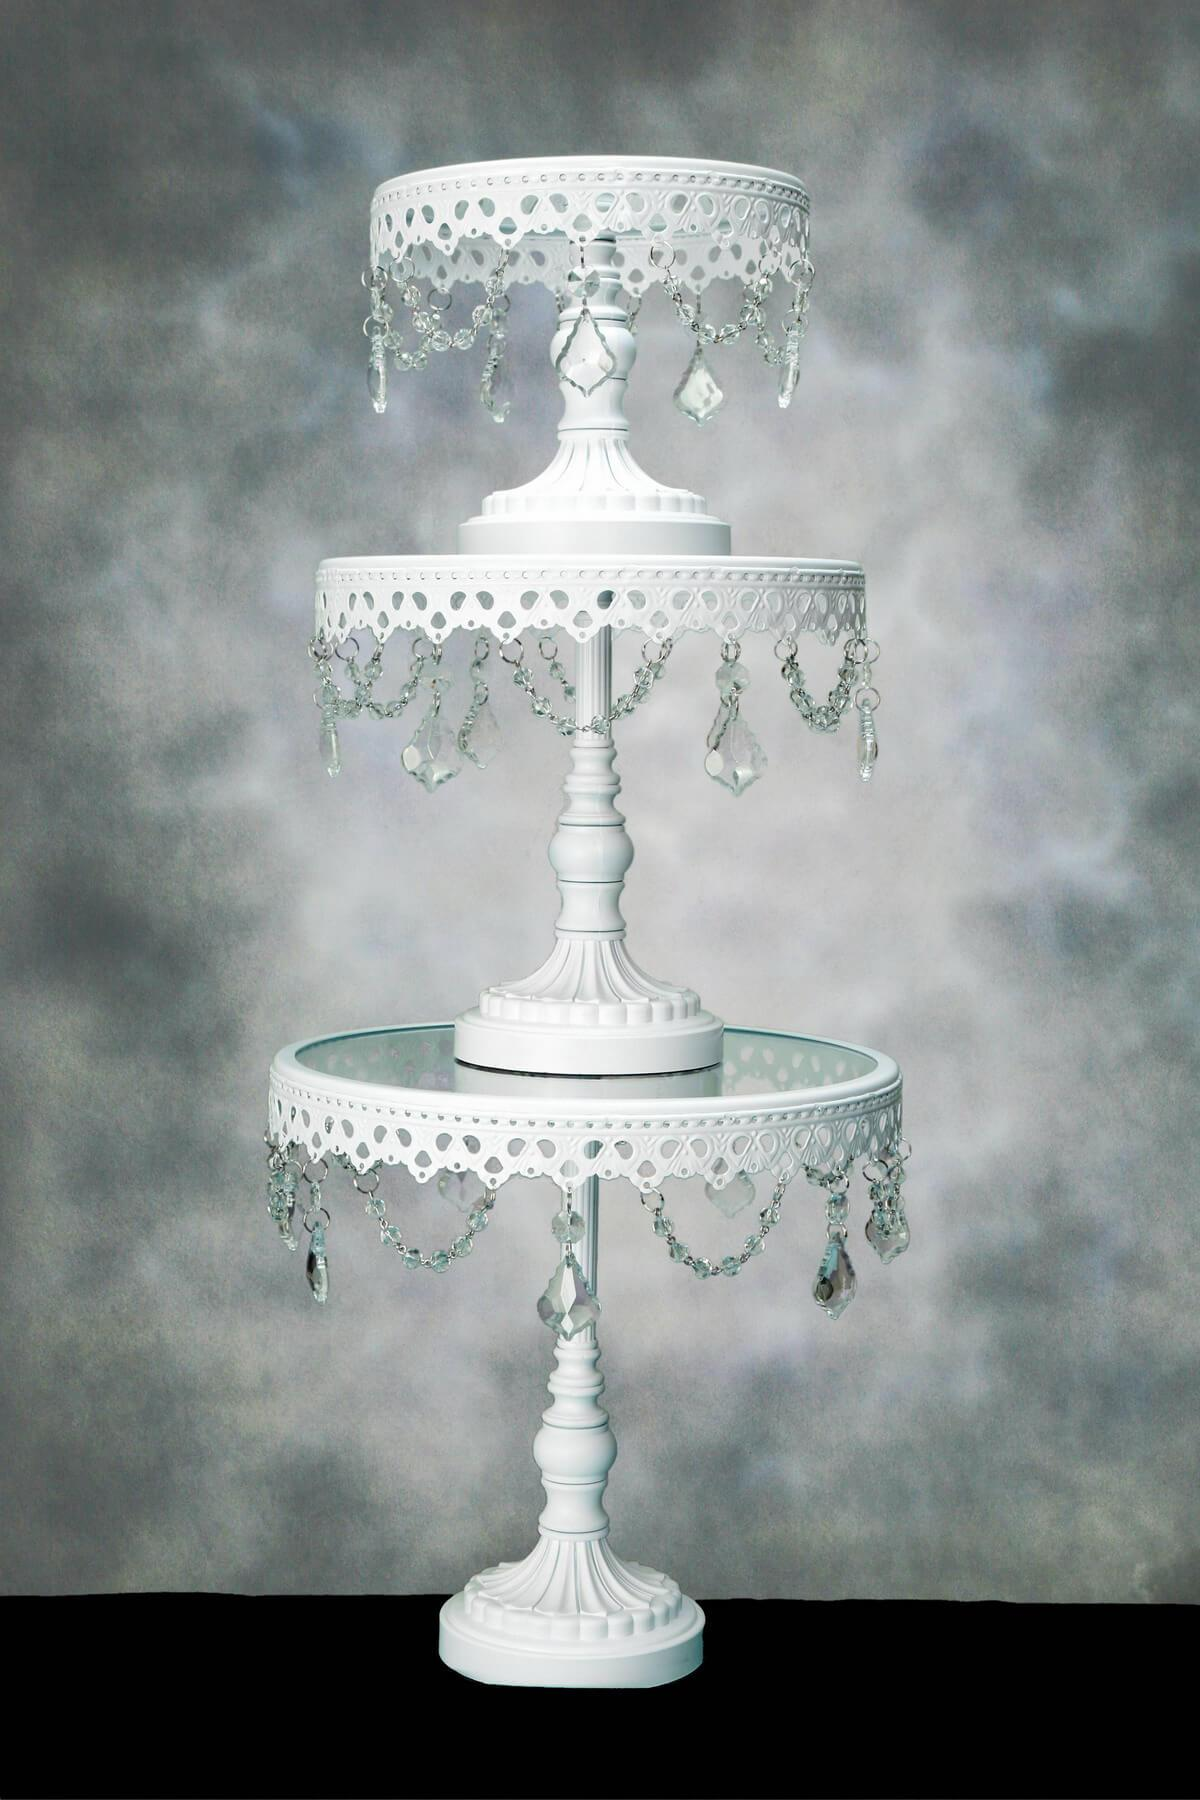 Crystal Cake Stands Pedestal (Set of 3)